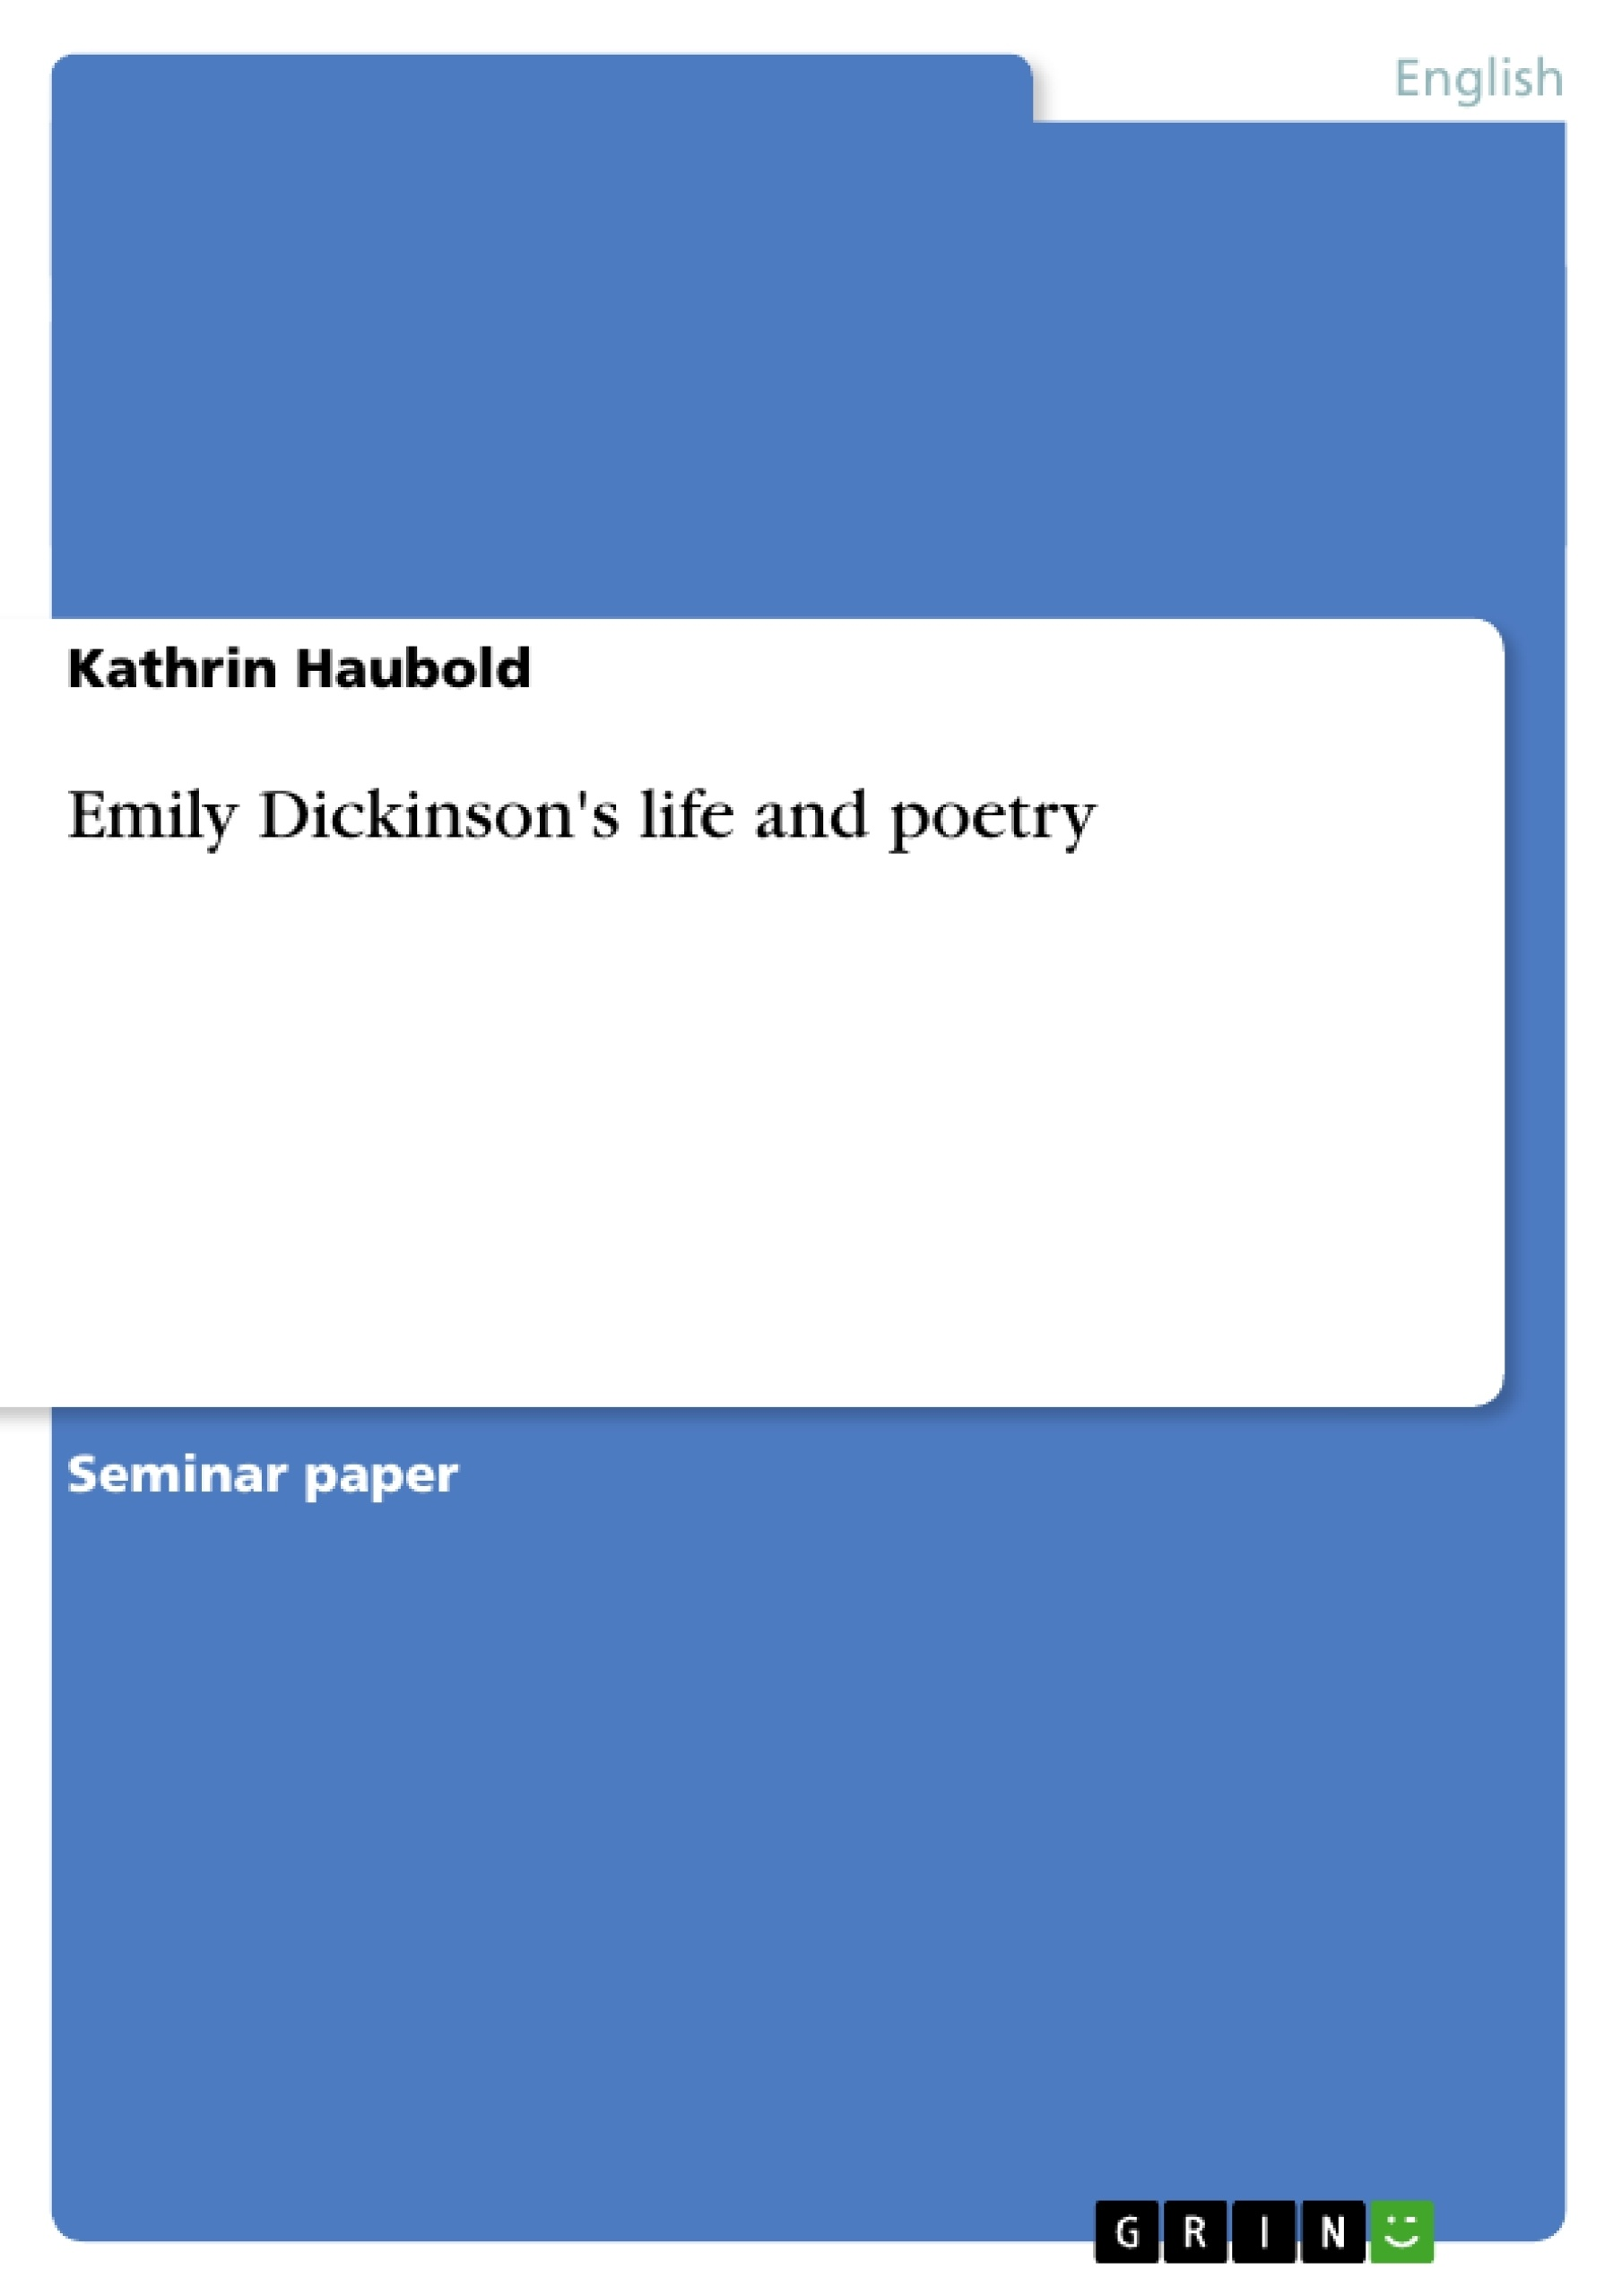 Thesis statement on emily dickinson